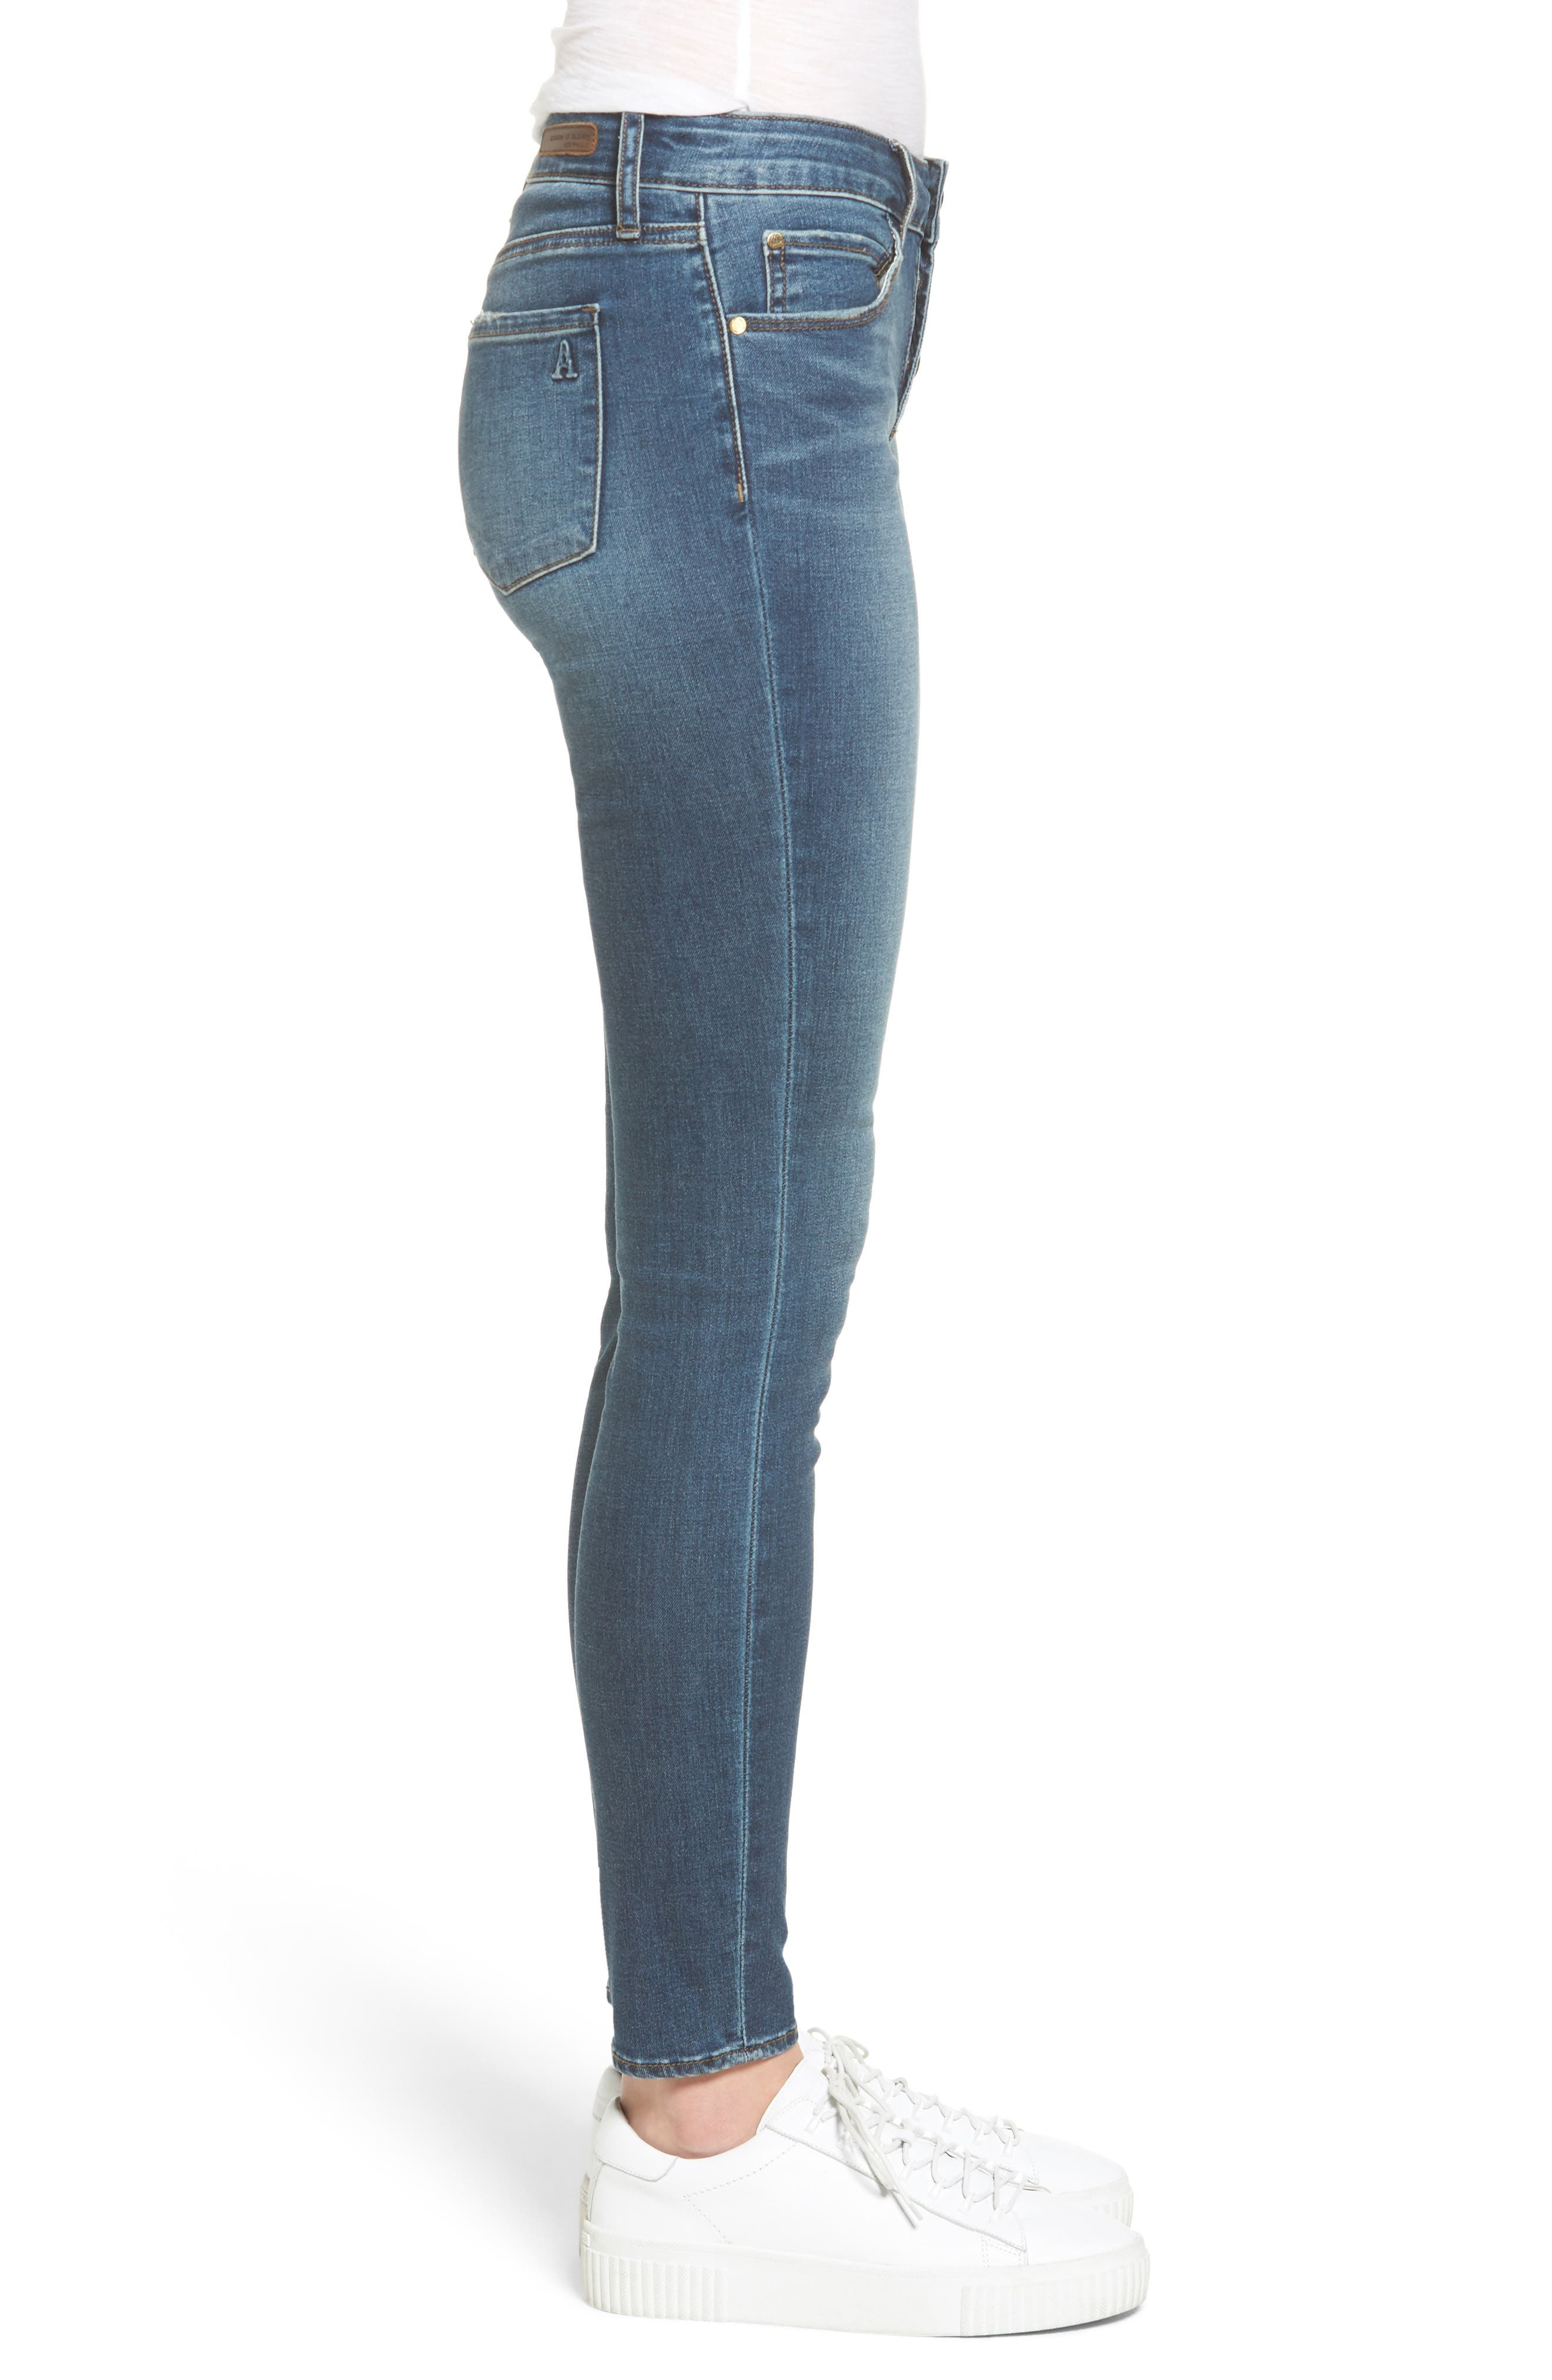 Alternate Image 3  - Articles of Society Britney Skinny Jeans (Harper)